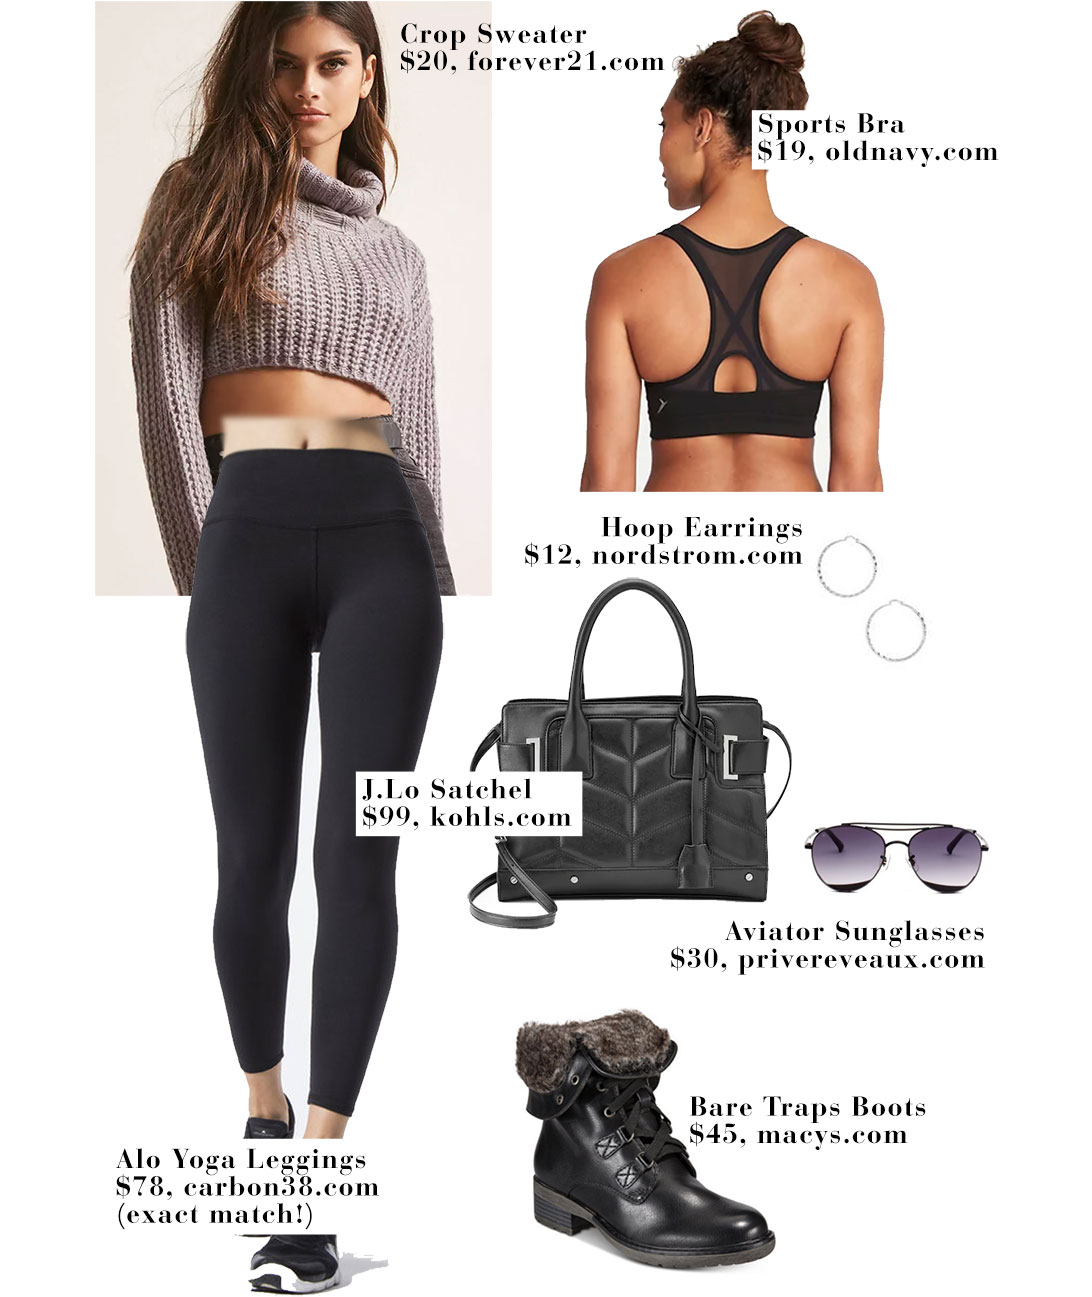 Jennifer Lopez wears a crop turtleneck sweater with Alo Yoga leggings and a Versace bag.